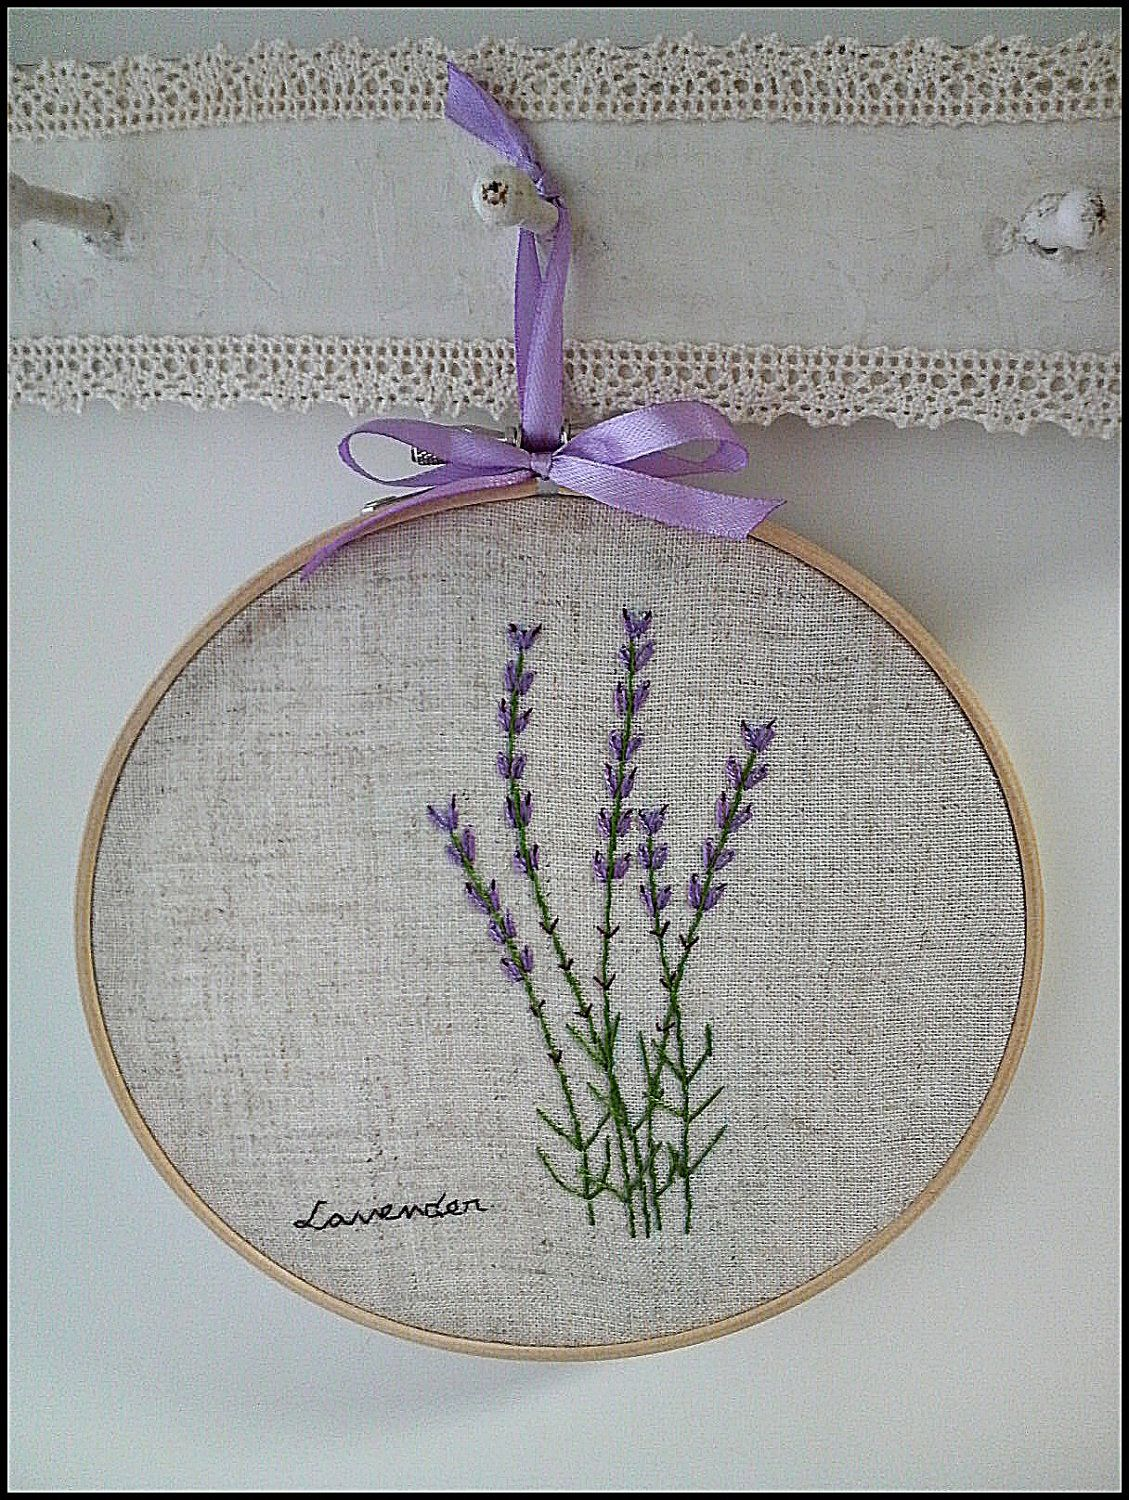 Hand Embroidery In Hoop Wall Art Lavender Flower Garden Japanese Embroidery Hand Embroidery Hand Embroidery Designs